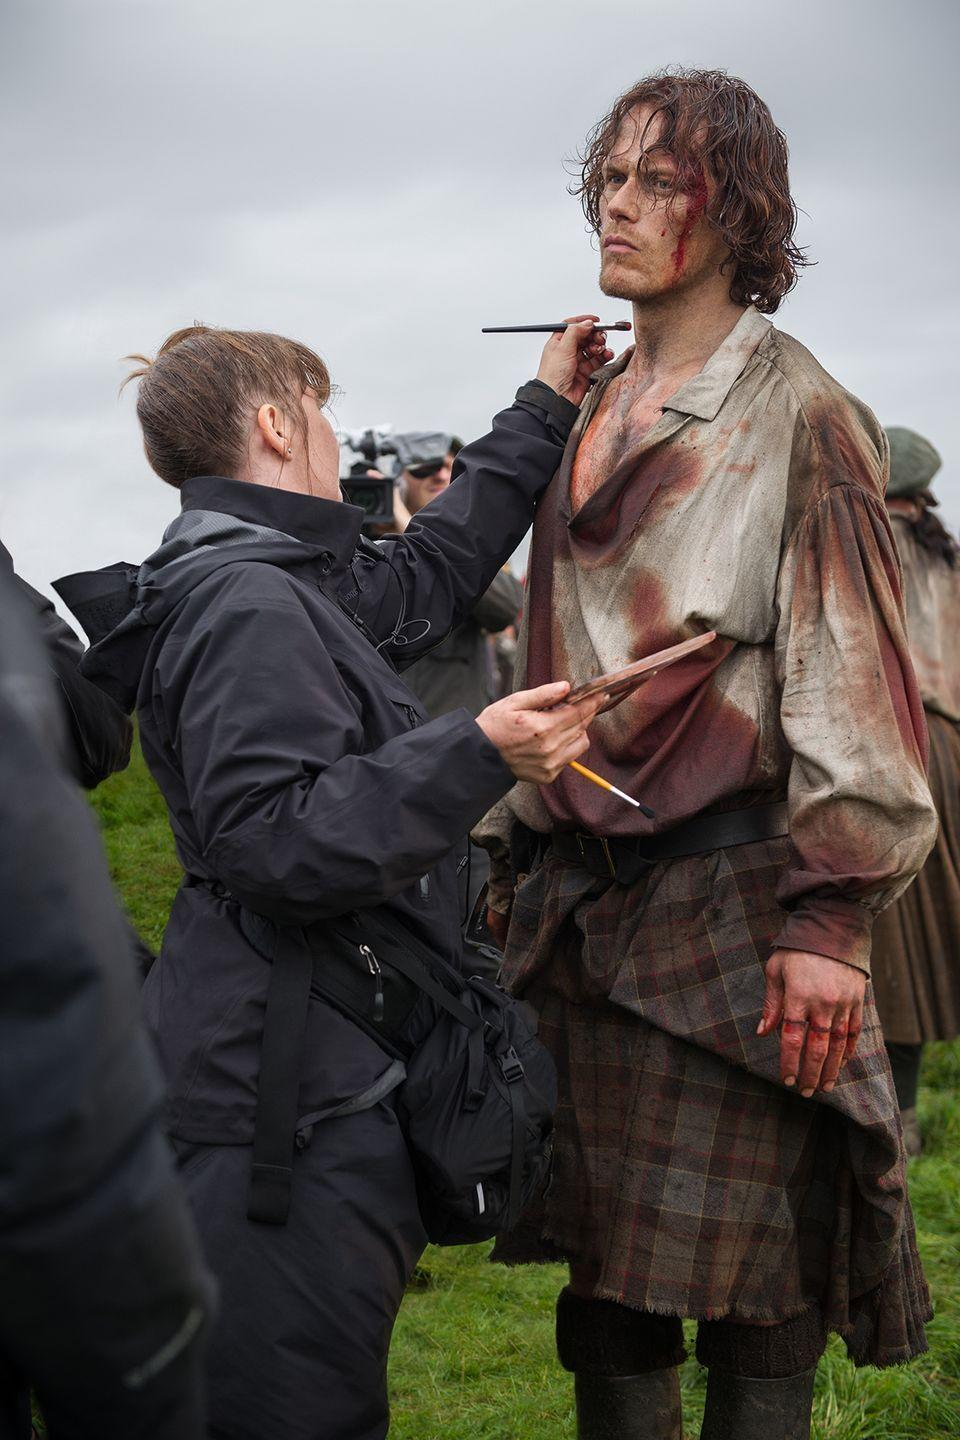 """<p>The scars take hours to apply—<a href=""""http://www.designntrend.com/articles/45856/20150330/outlander-star-sam-heughan-talks-misery-putting-makeup-hit-starz-tv-series.htm"""" rel=""""nofollow noopener"""" target=""""_blank"""" data-ylk=""""slk:every, single time."""" class=""""link rapid-noclick-resp"""">every, single time.</a></p>"""